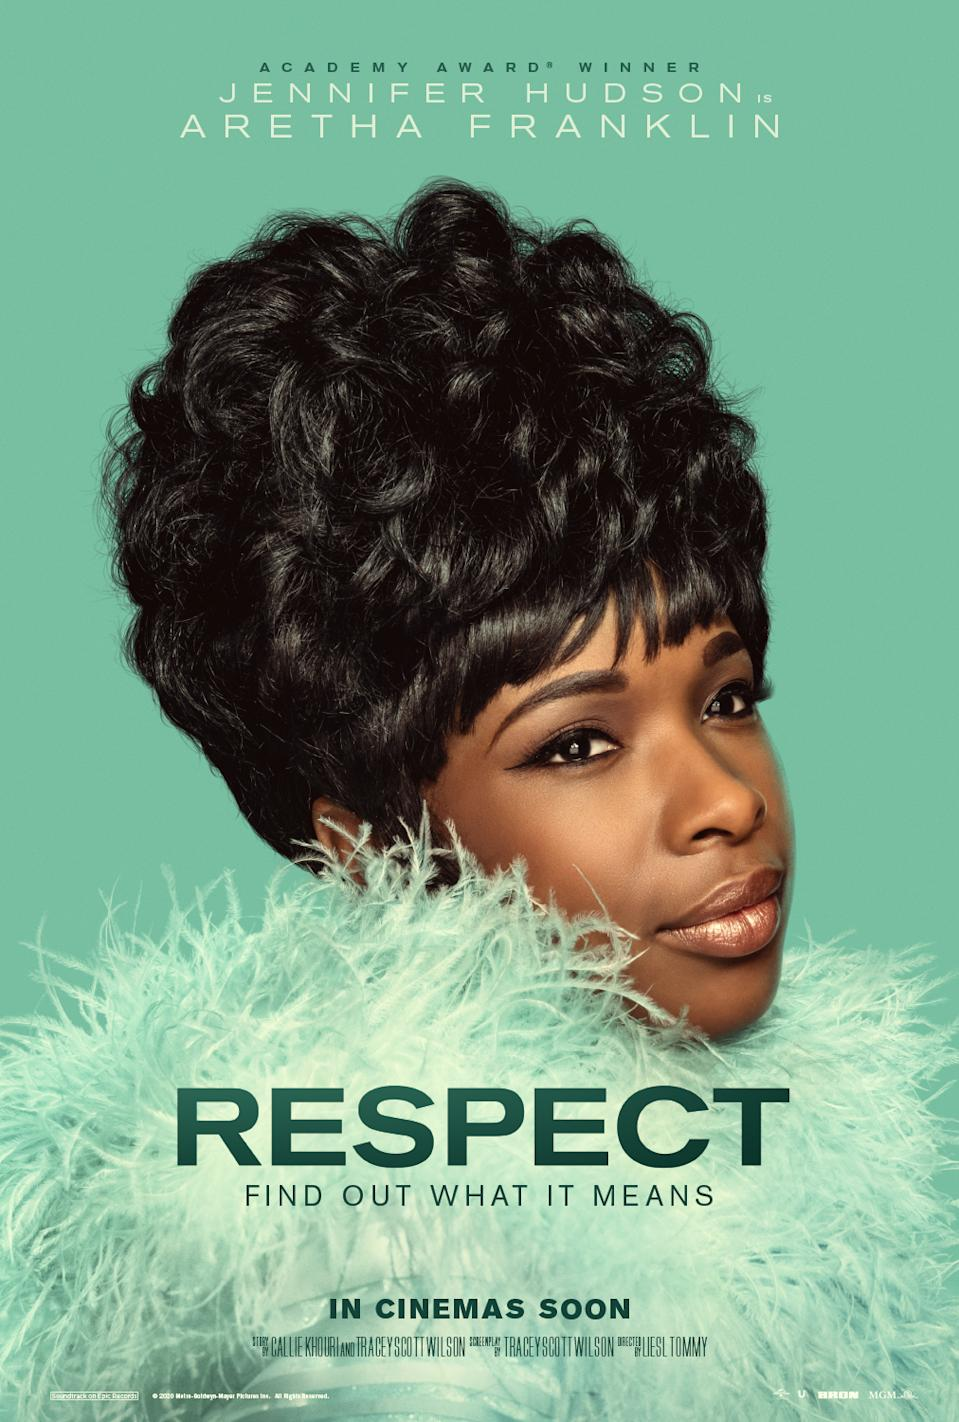 The UK poster for Respect. (Universal)